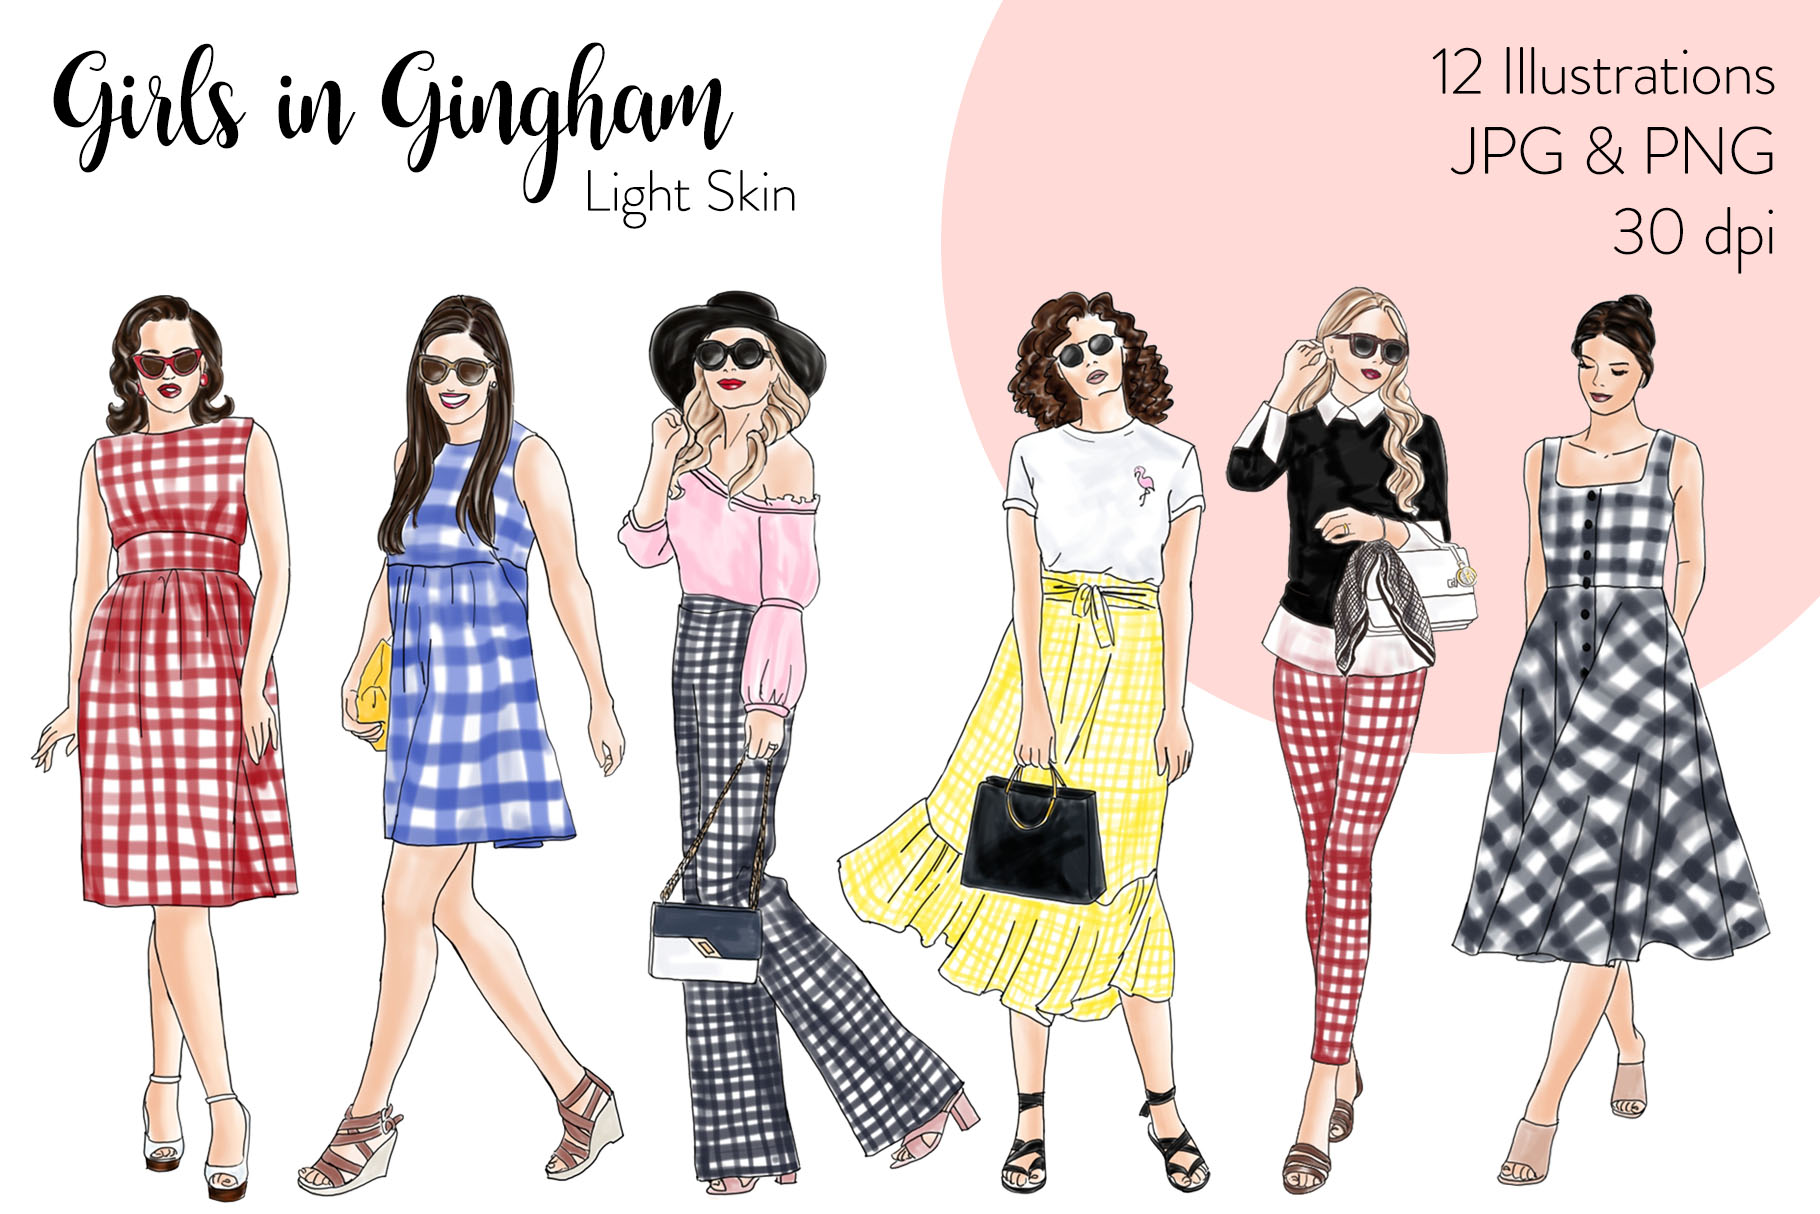 Fashion illustration clipart - Girls in Gingham - Light Skin example image 1